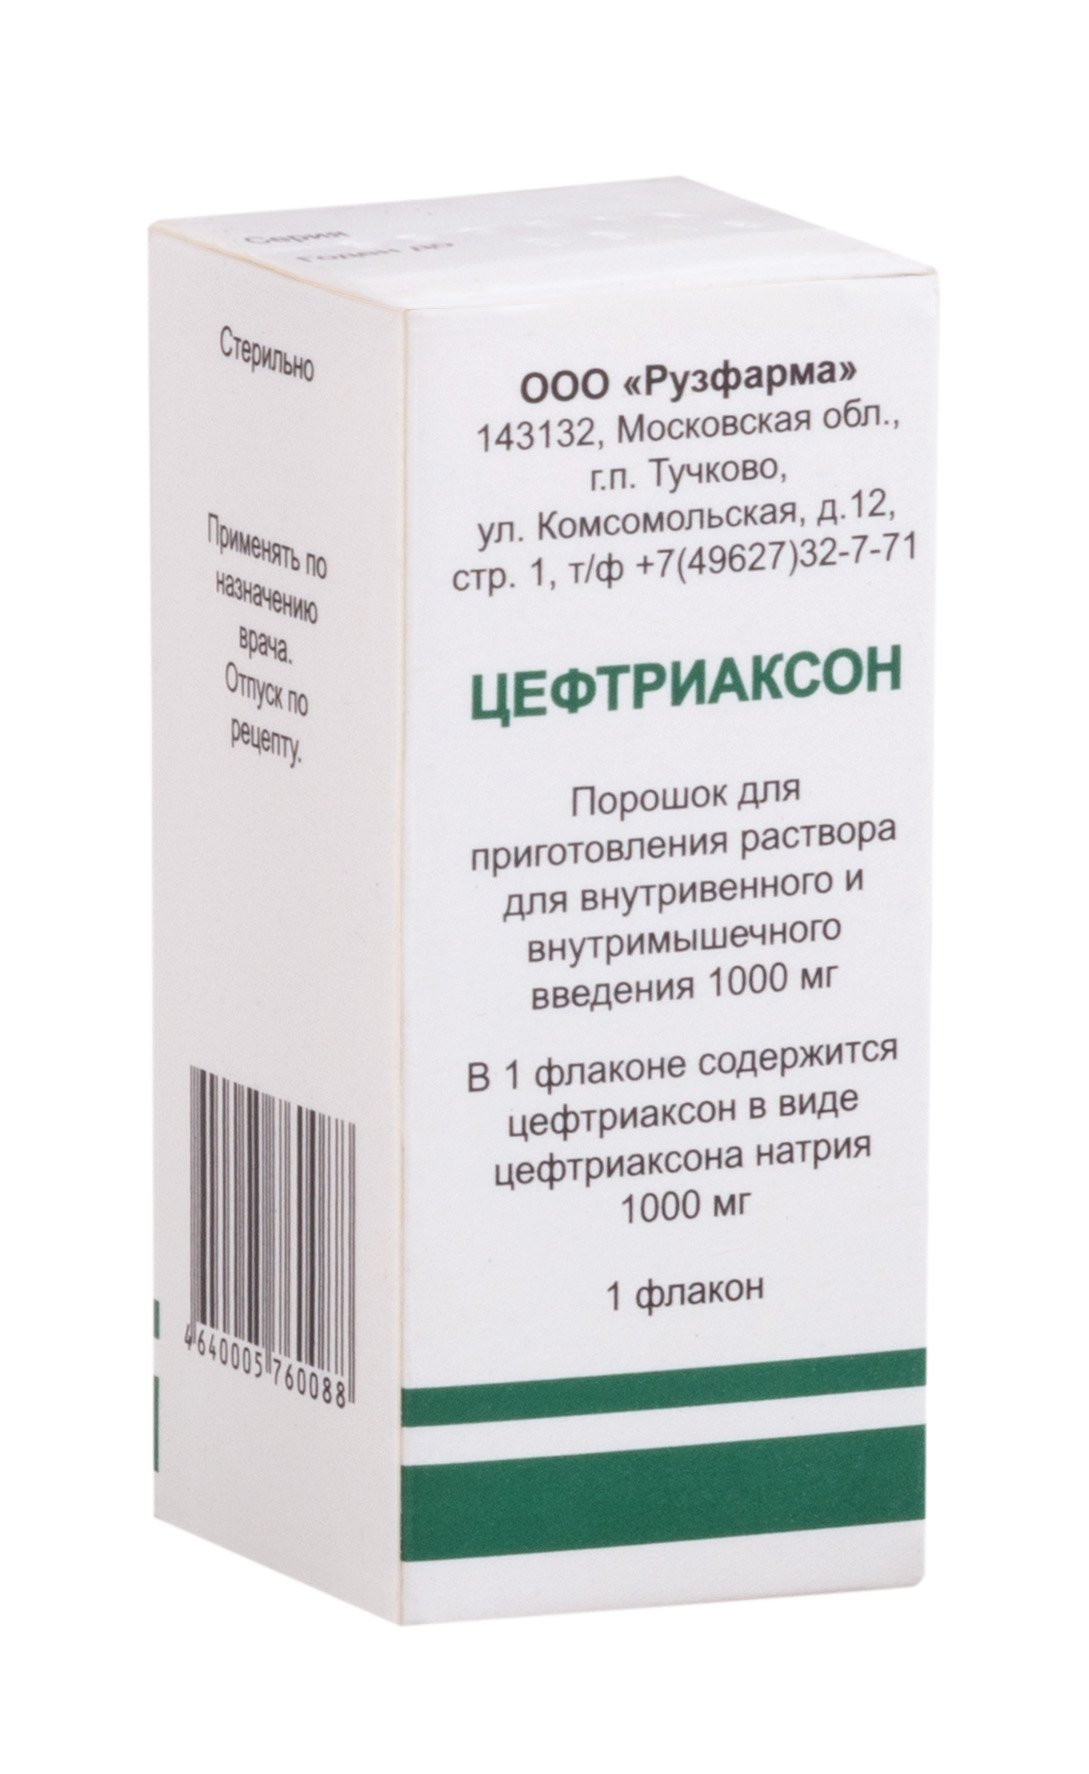 Ceftriaxon (ceftriaxone) powder for solution for injections 1g. №1 vial